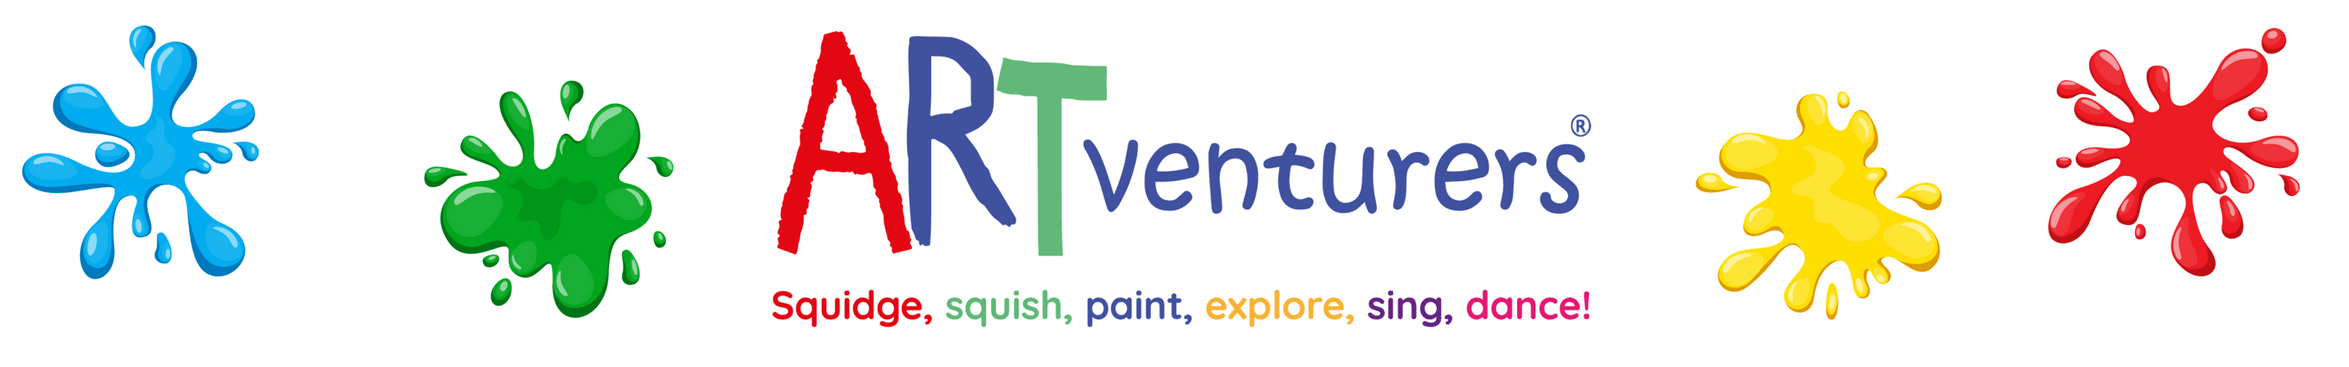 ARTventurers Croydon, Bromley and Lambeth